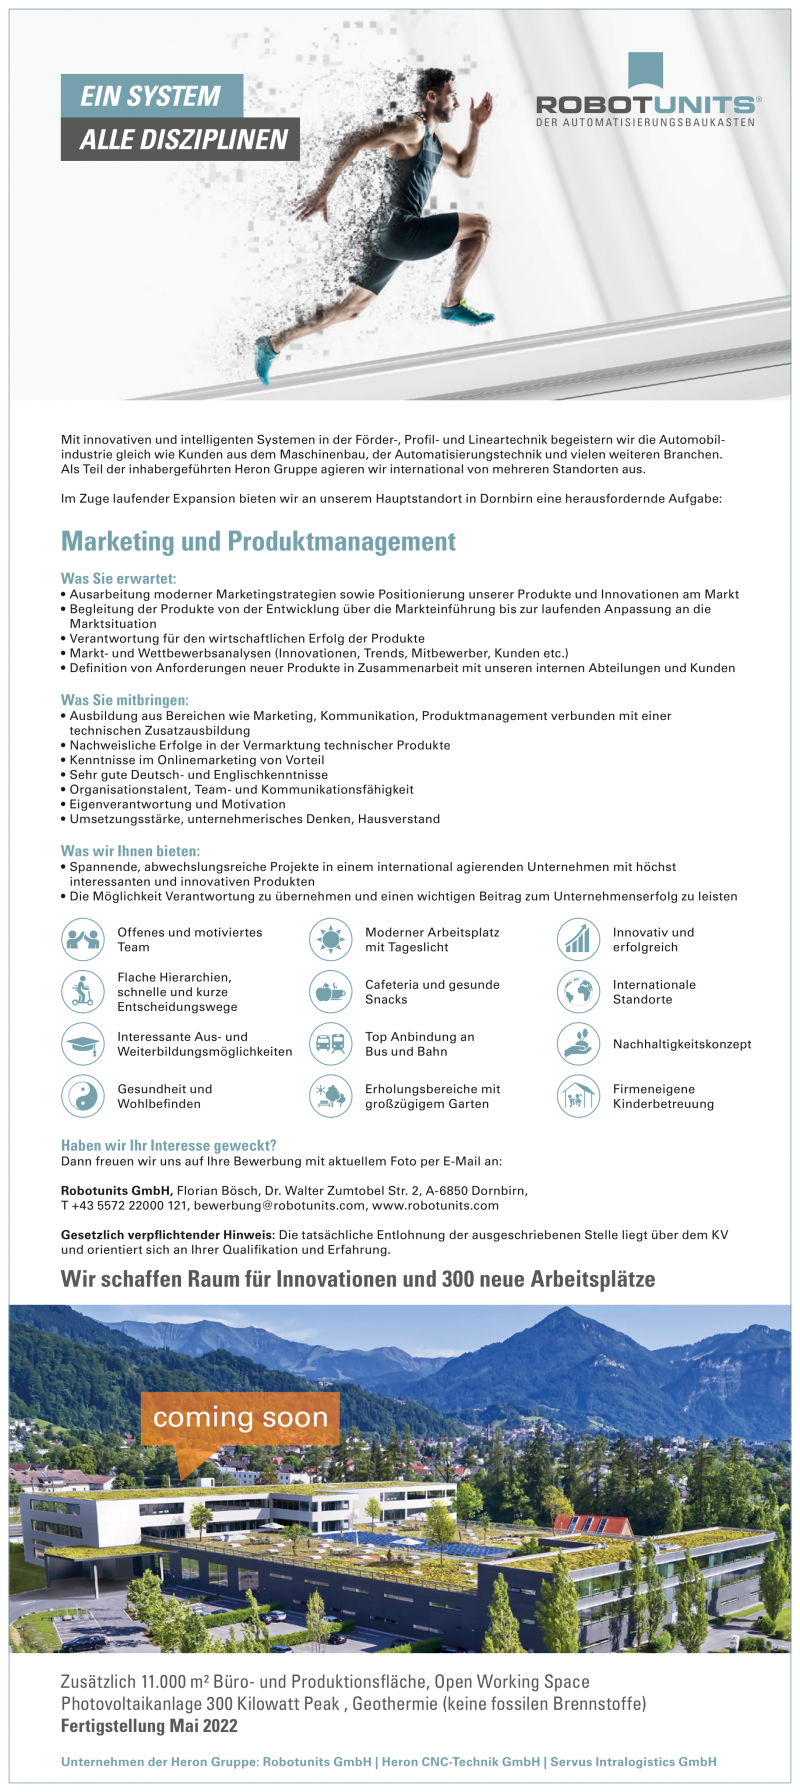 Marketing und Produktmanagement